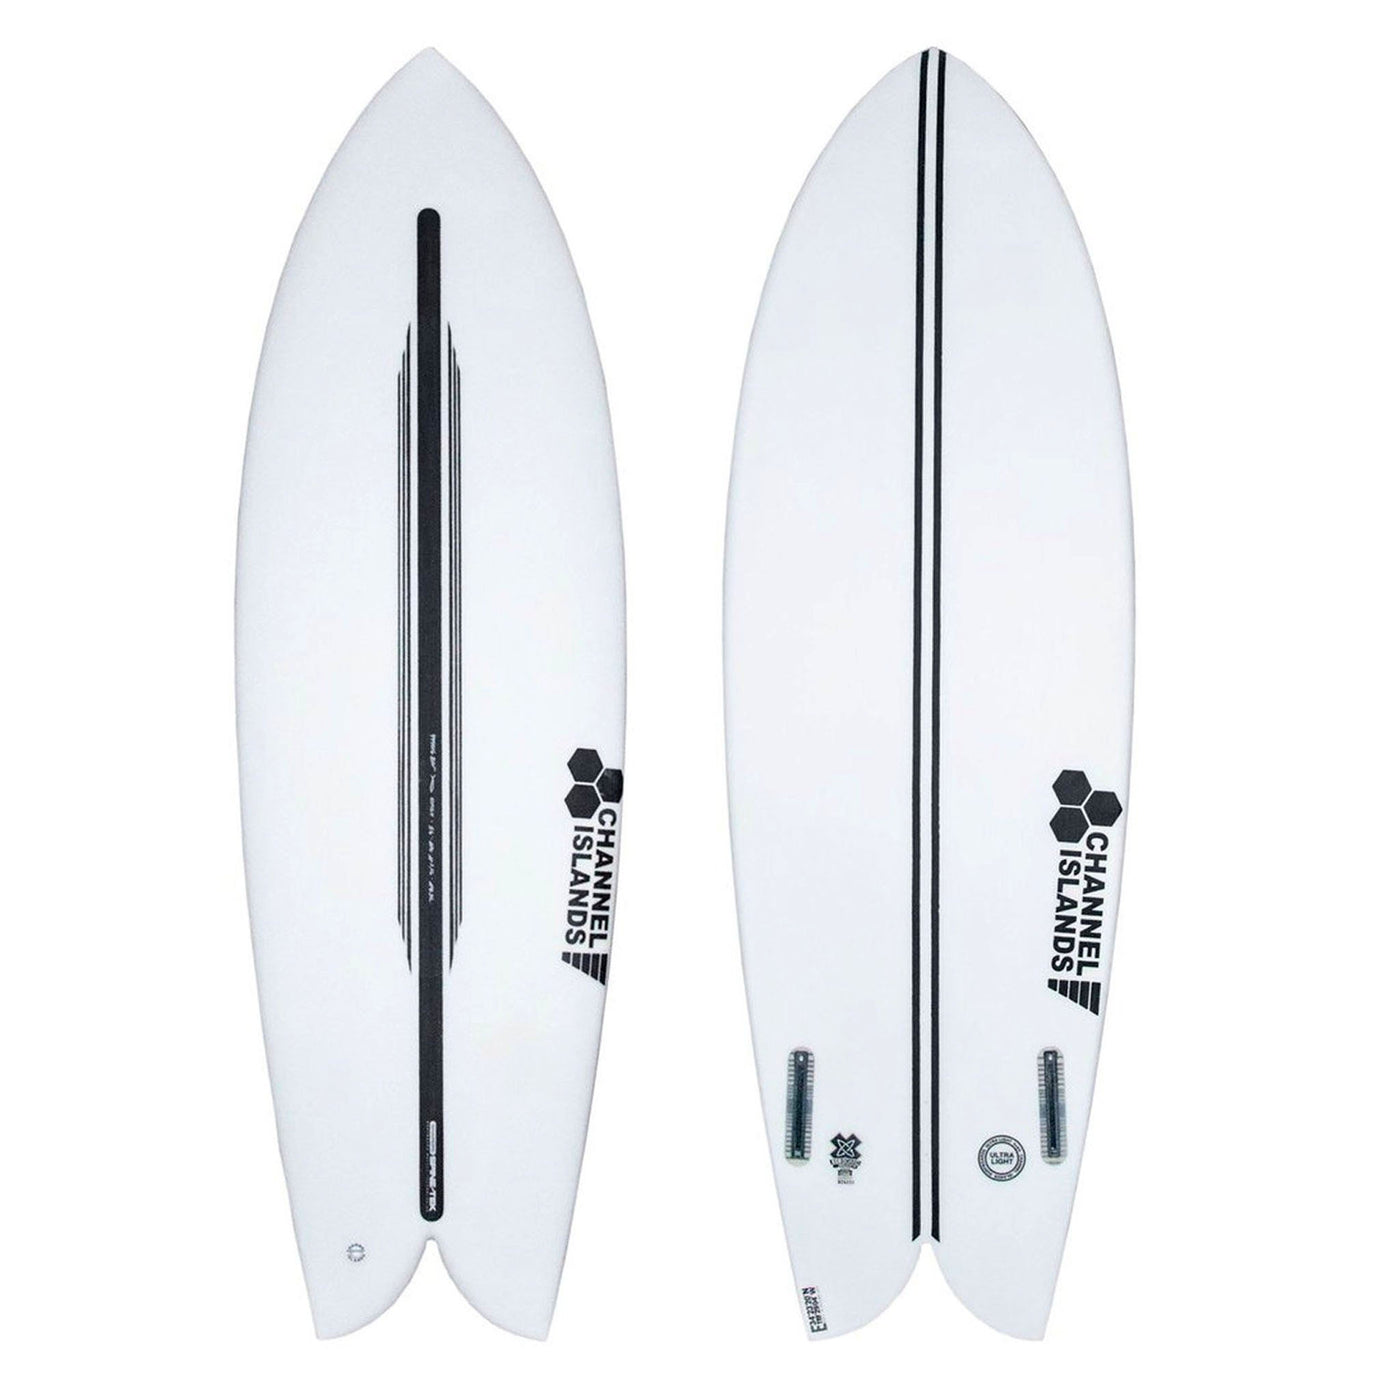 New Used Surfboards Wetsuits Surf Clothing Beach Accessories